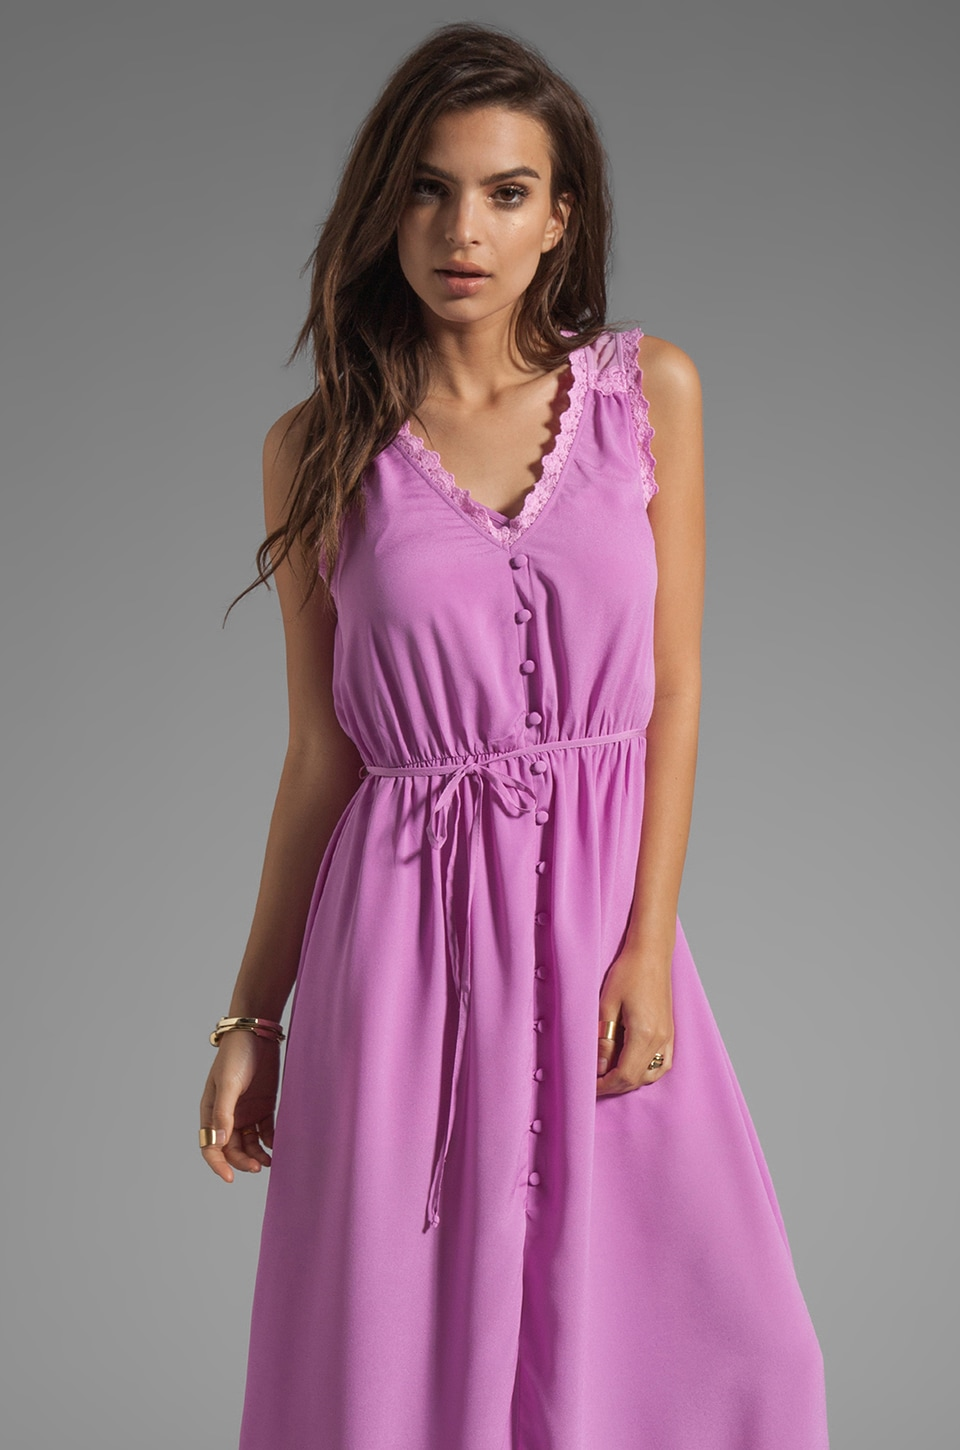 Ladakh Hidden Treasure Dress en Rose Craie